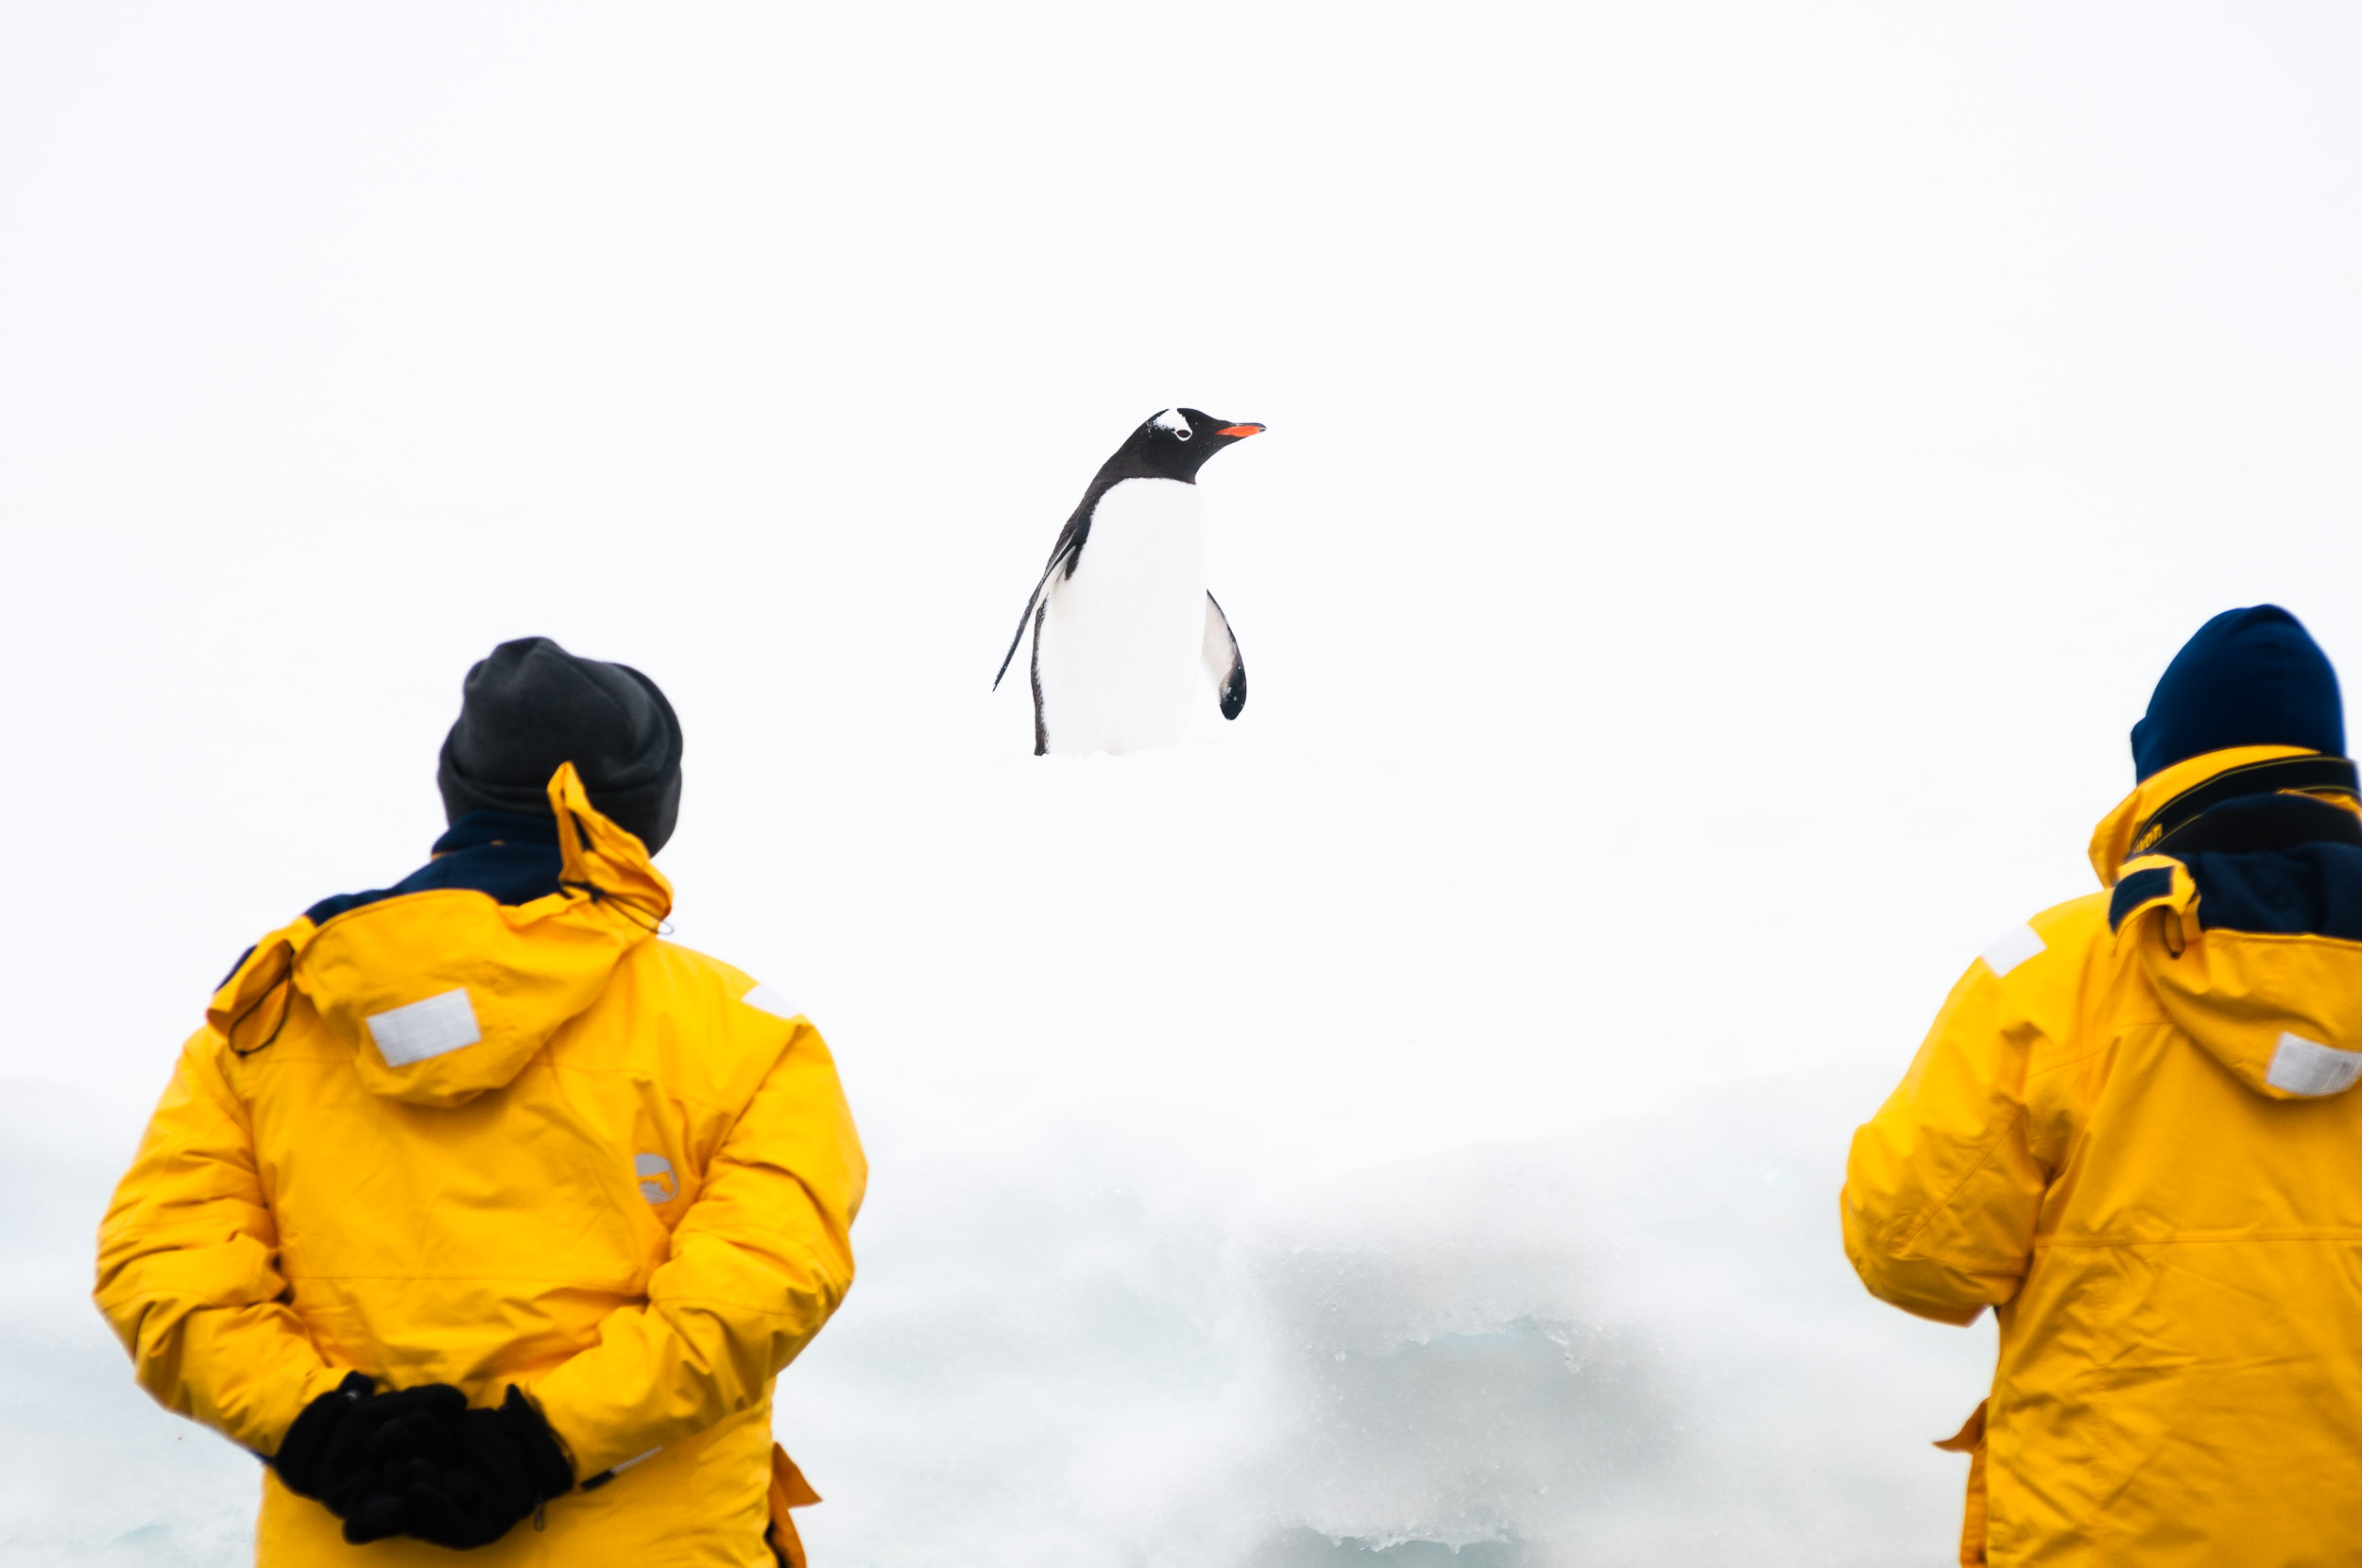 Tourists watching a Gentoo Penguin (Pygoscelis papua) on a snowbank, Cuverville Island, Danco Coast, Graham Land, Antarctica.